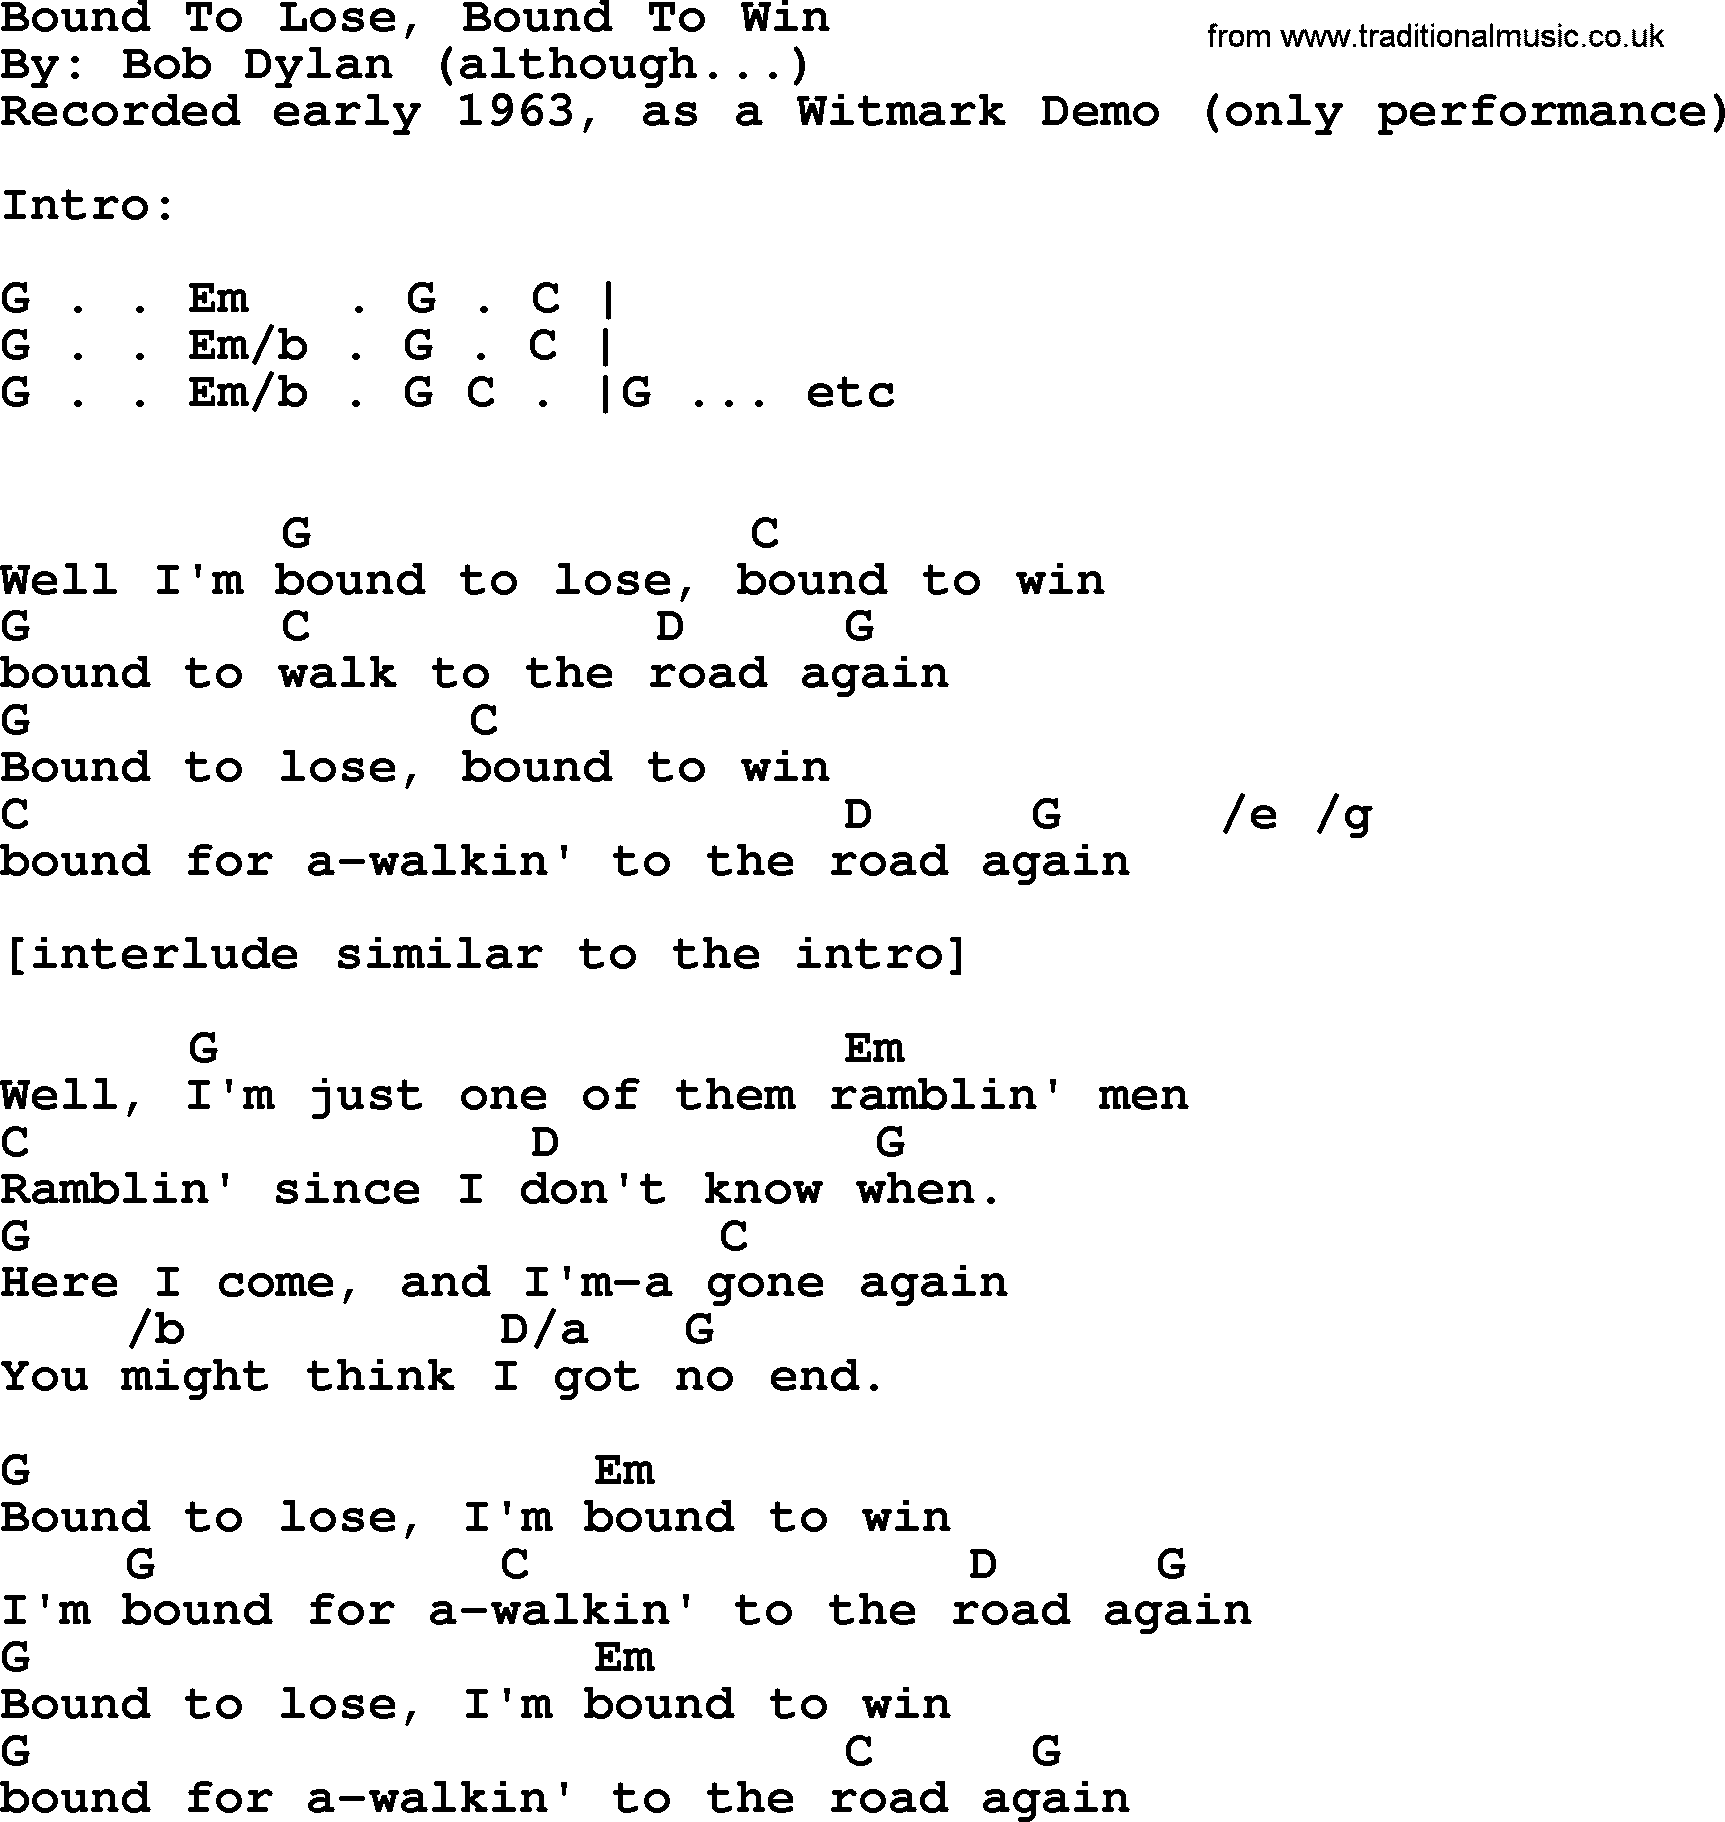 Bob Dylan Song Bound To Lose Bound To Win Lyrics And Chords